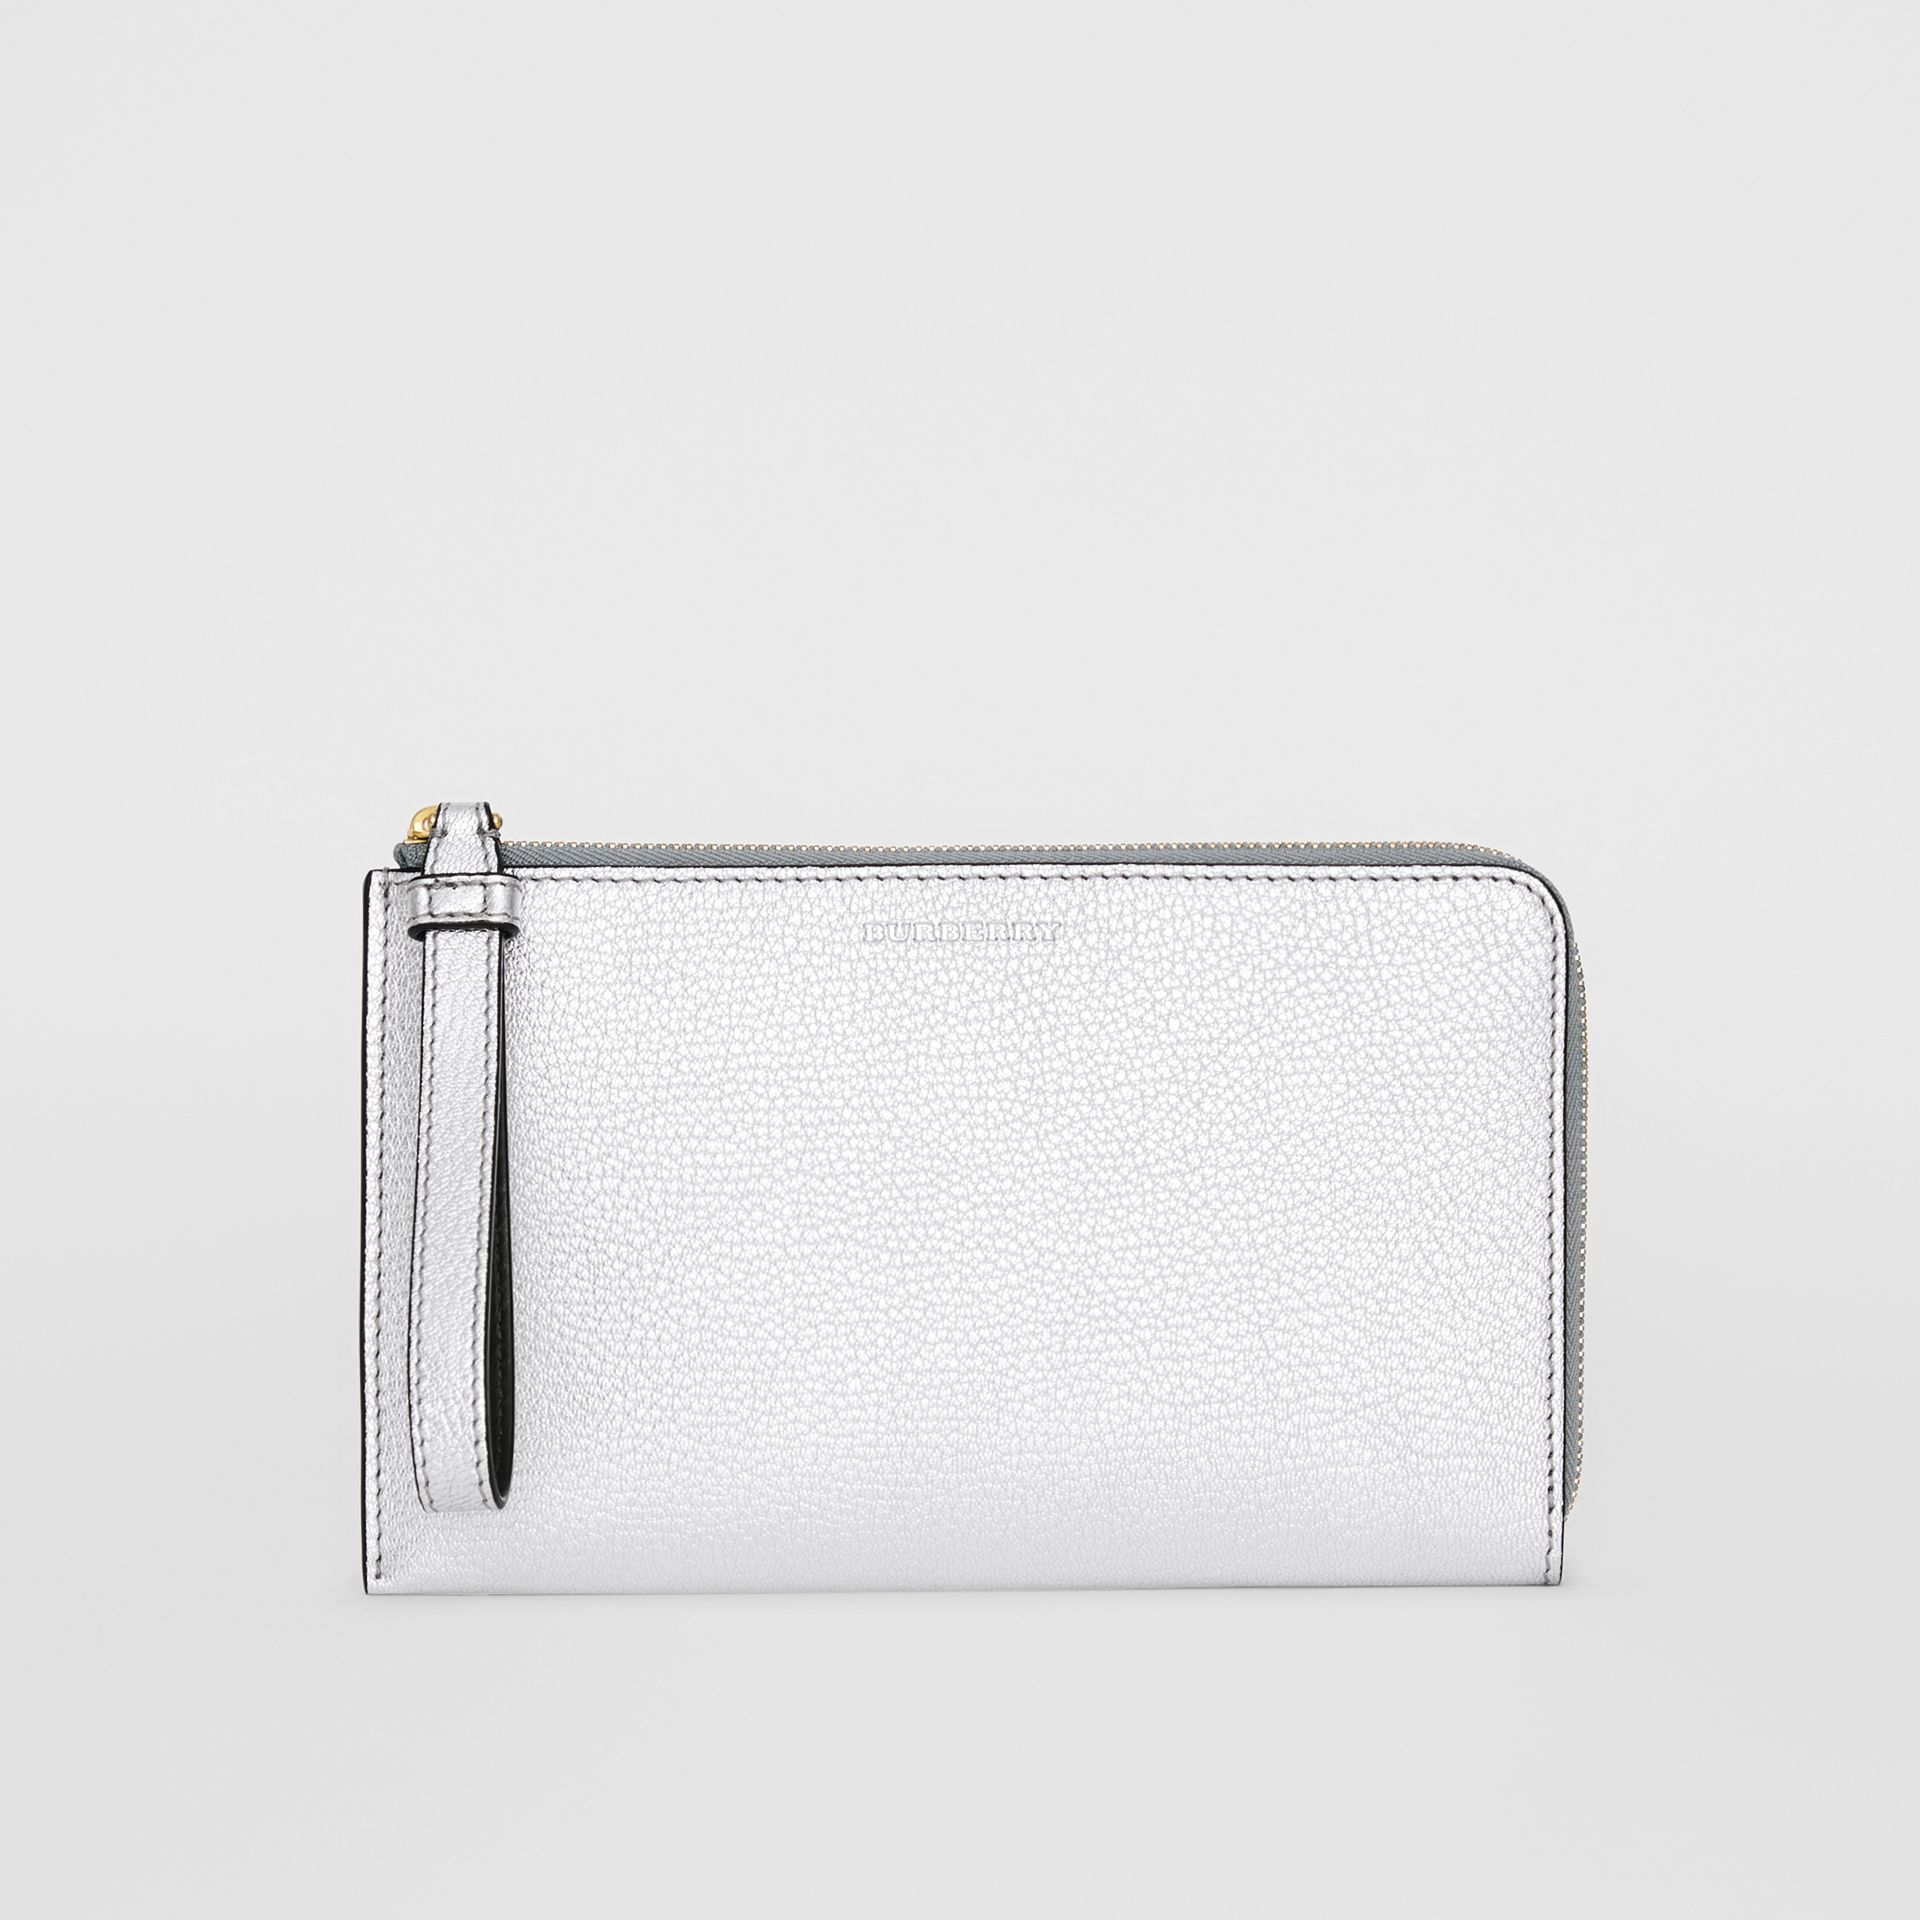 Two-tone Metallic Leather Travel Wallet in Silver - Women | Burberry - gallery image 0